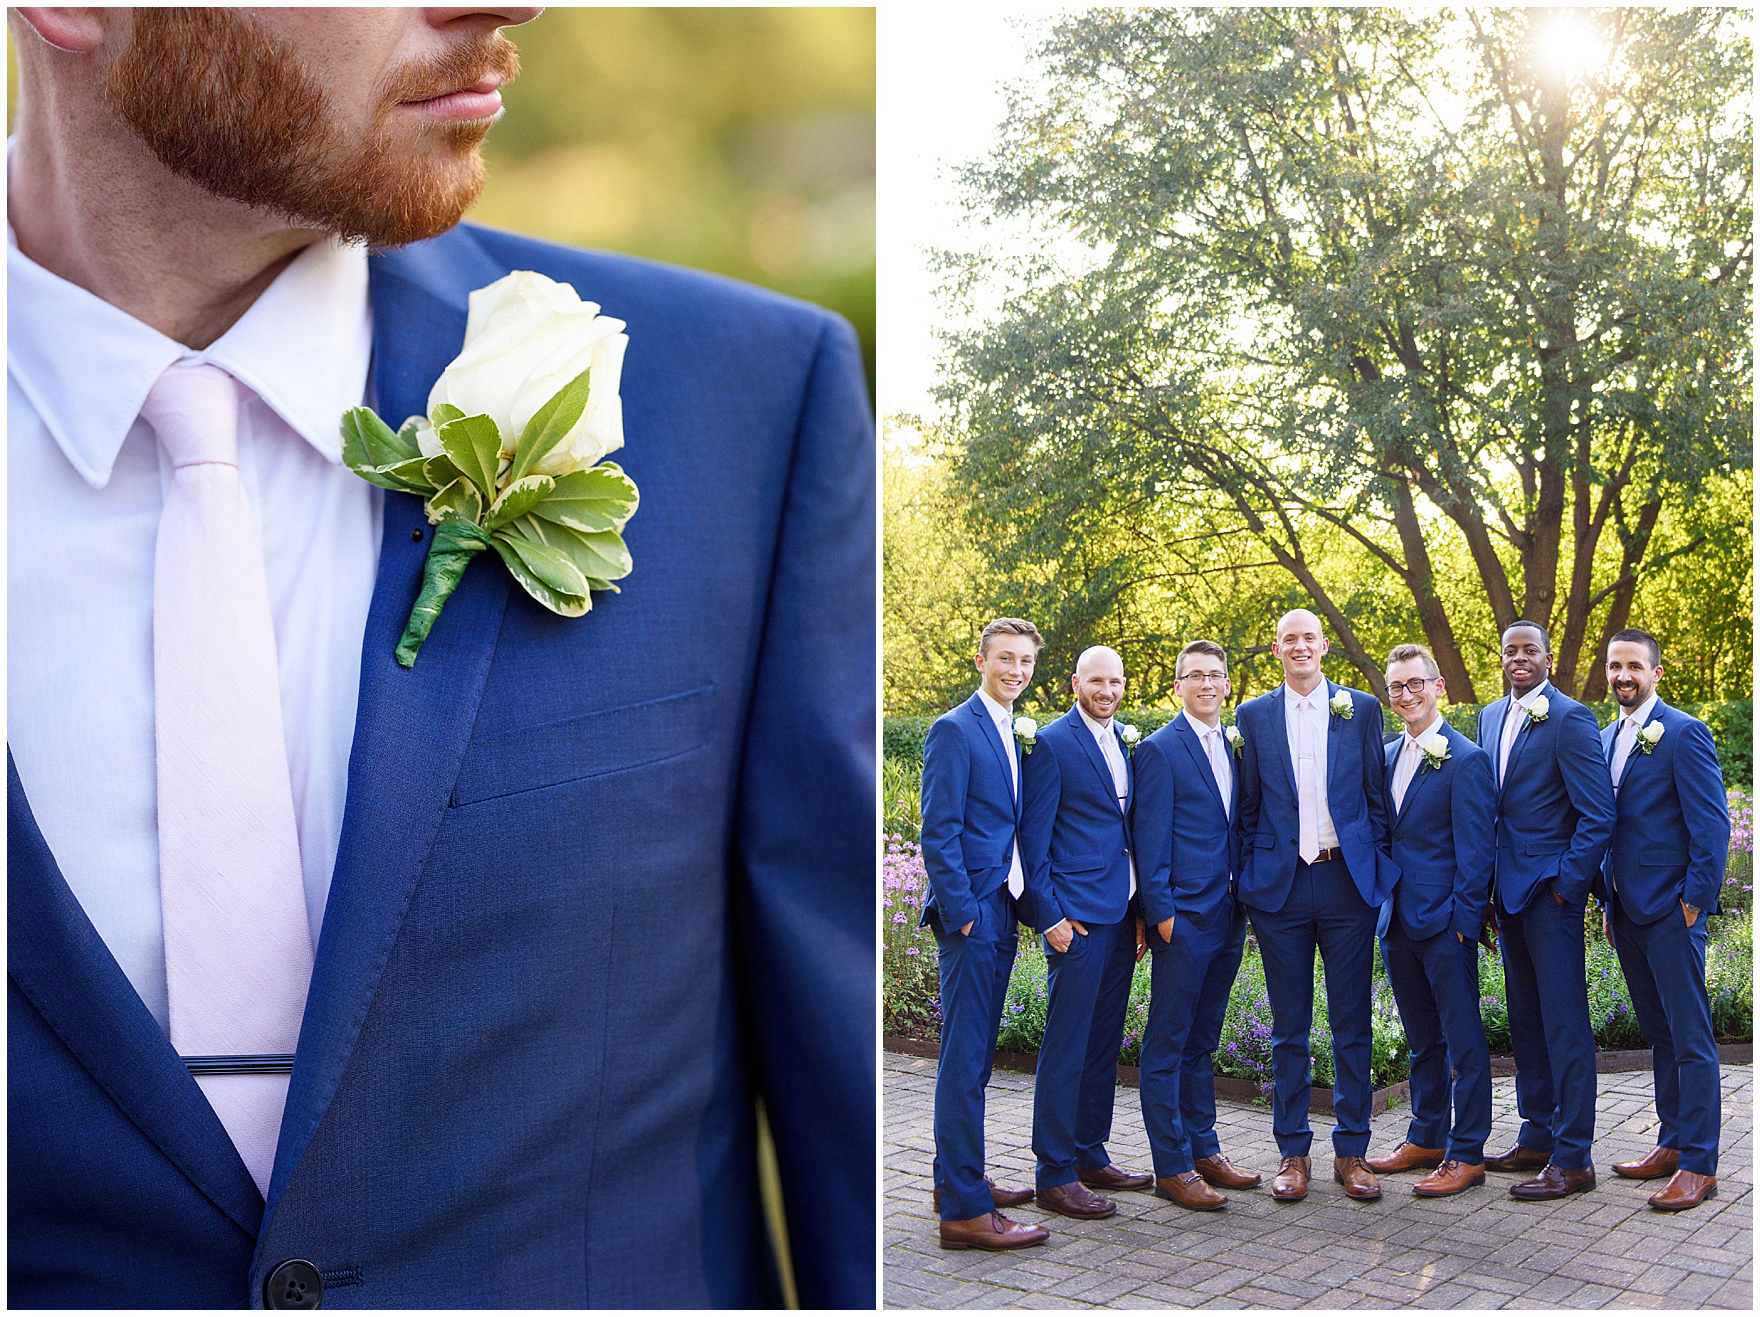 The groomsmen pose for portraits at Cantigny Park for a St. Josephs Downers Grove Pinstripes Oak Brook, Illinois wedding.